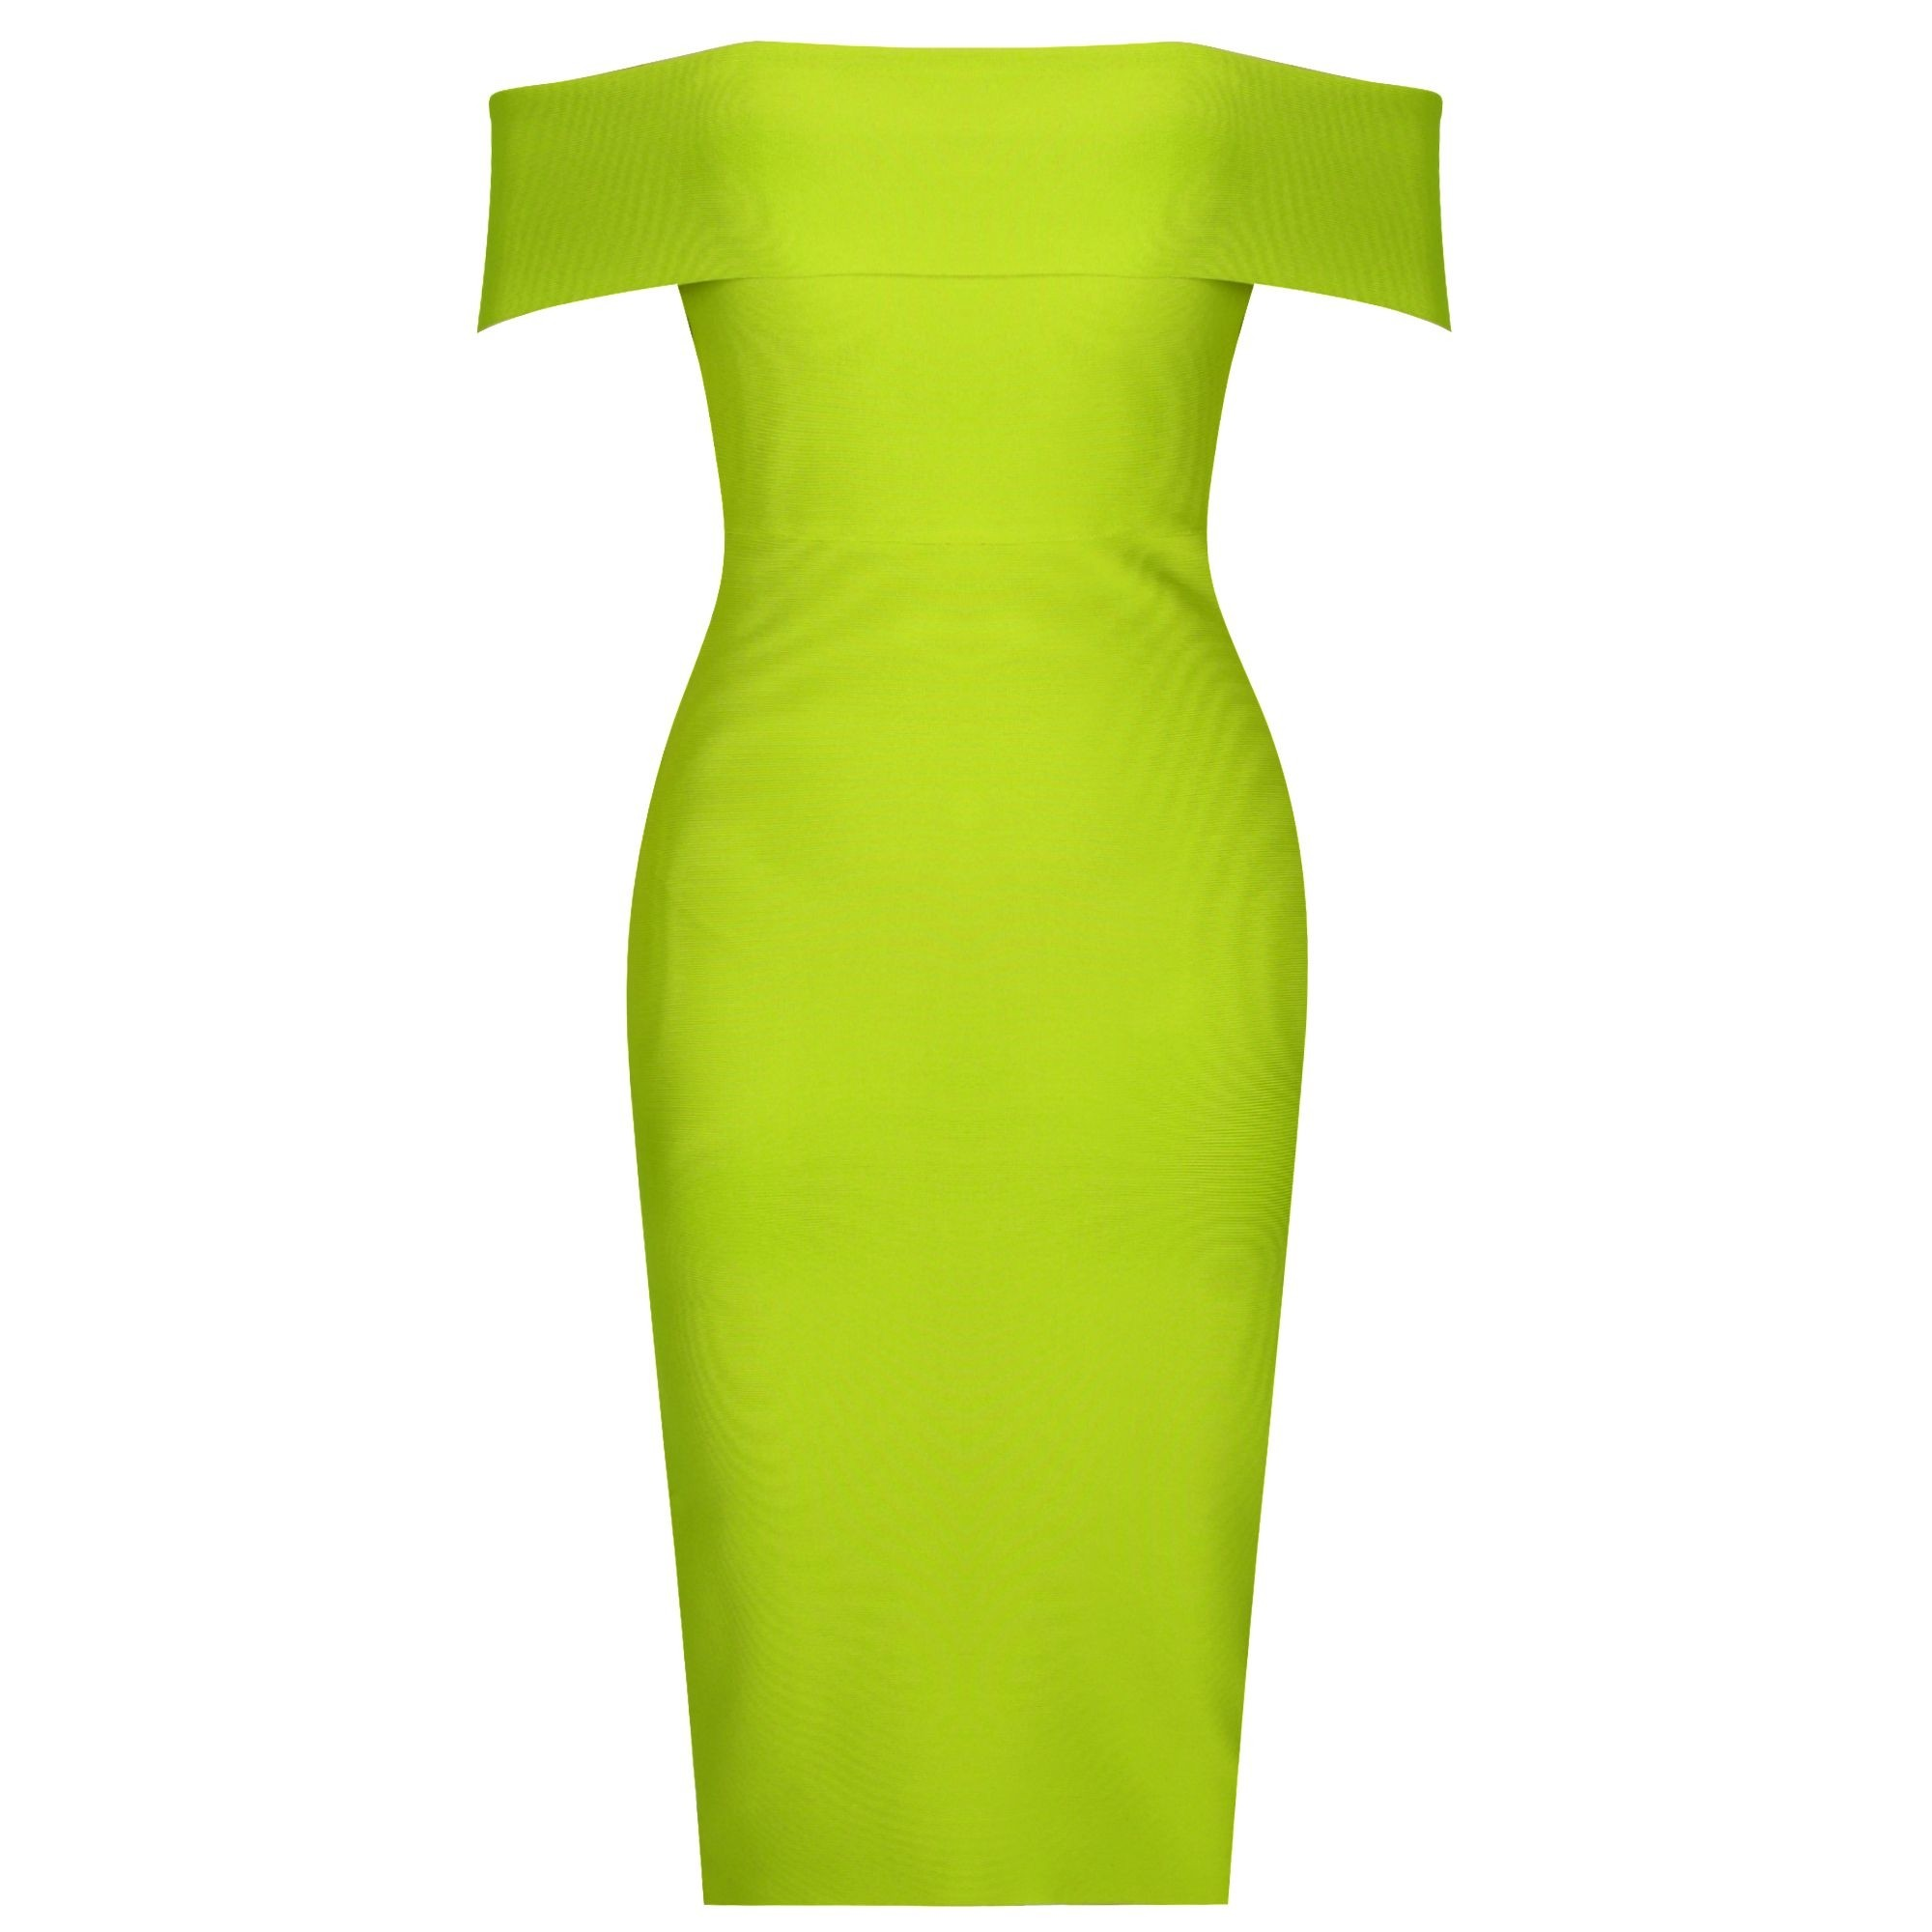 Green Backless Over Knee Short Sleeve Off Shoulder Bandage Dress PF19162-Green